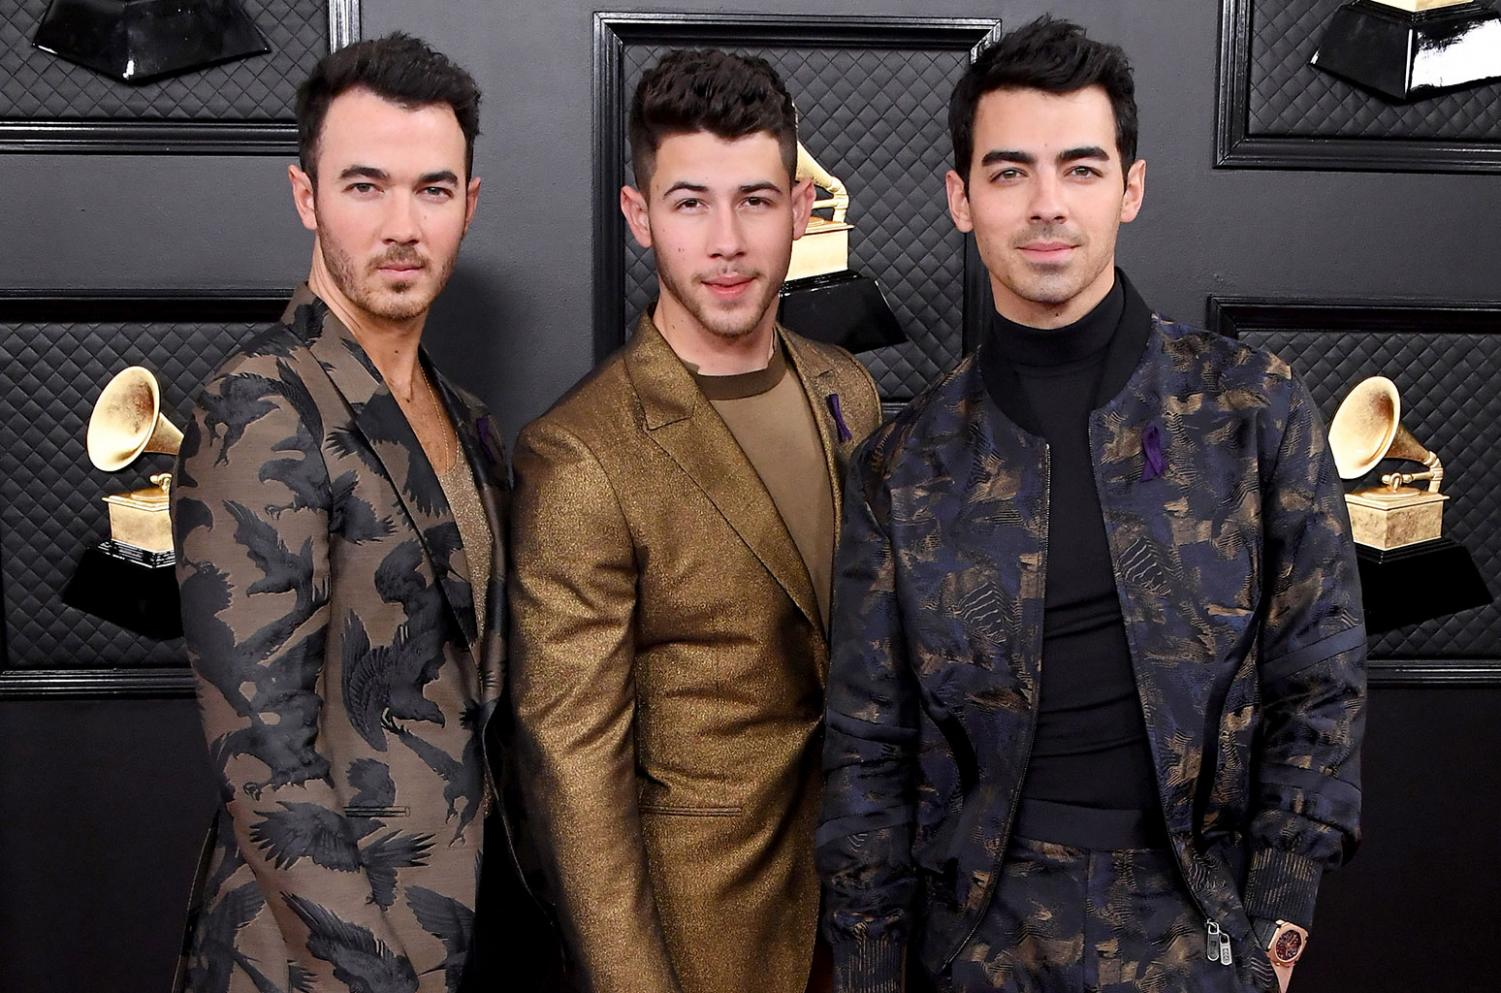 The Jonas Brothers stand together and pose for the camera while on the red carpet at The Grammy Awards.